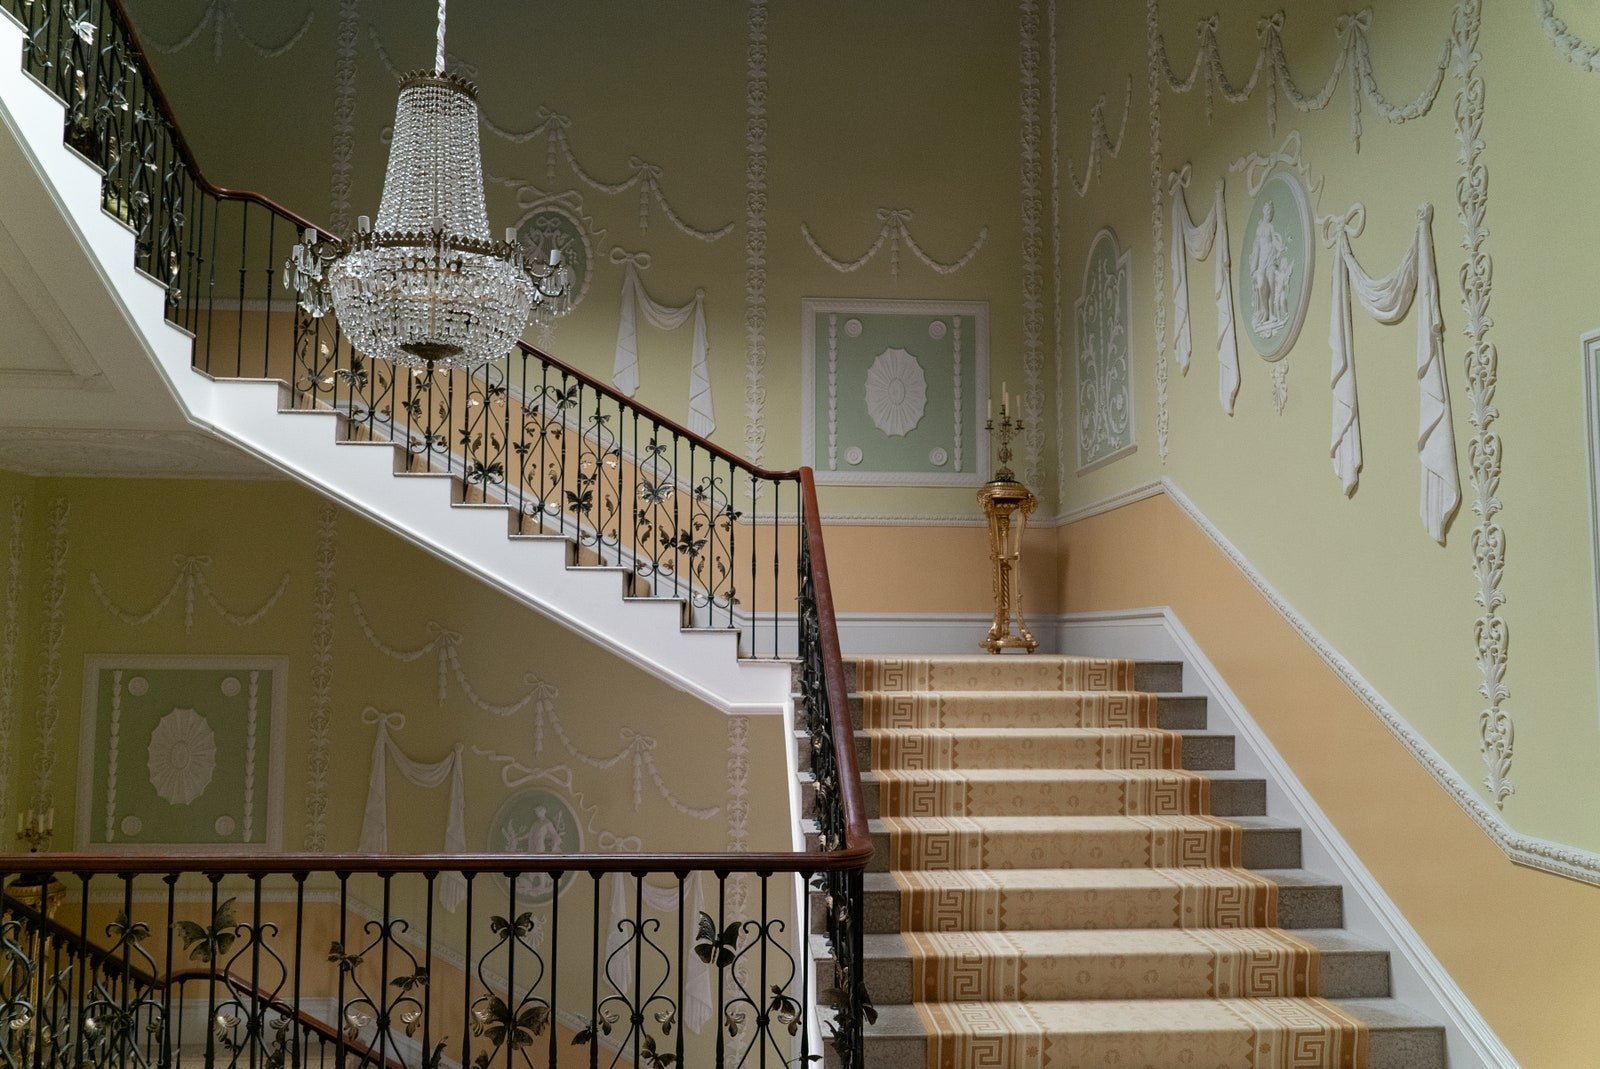 Netflix Bridgerton stairway with green walls and millwork and butterfly railing